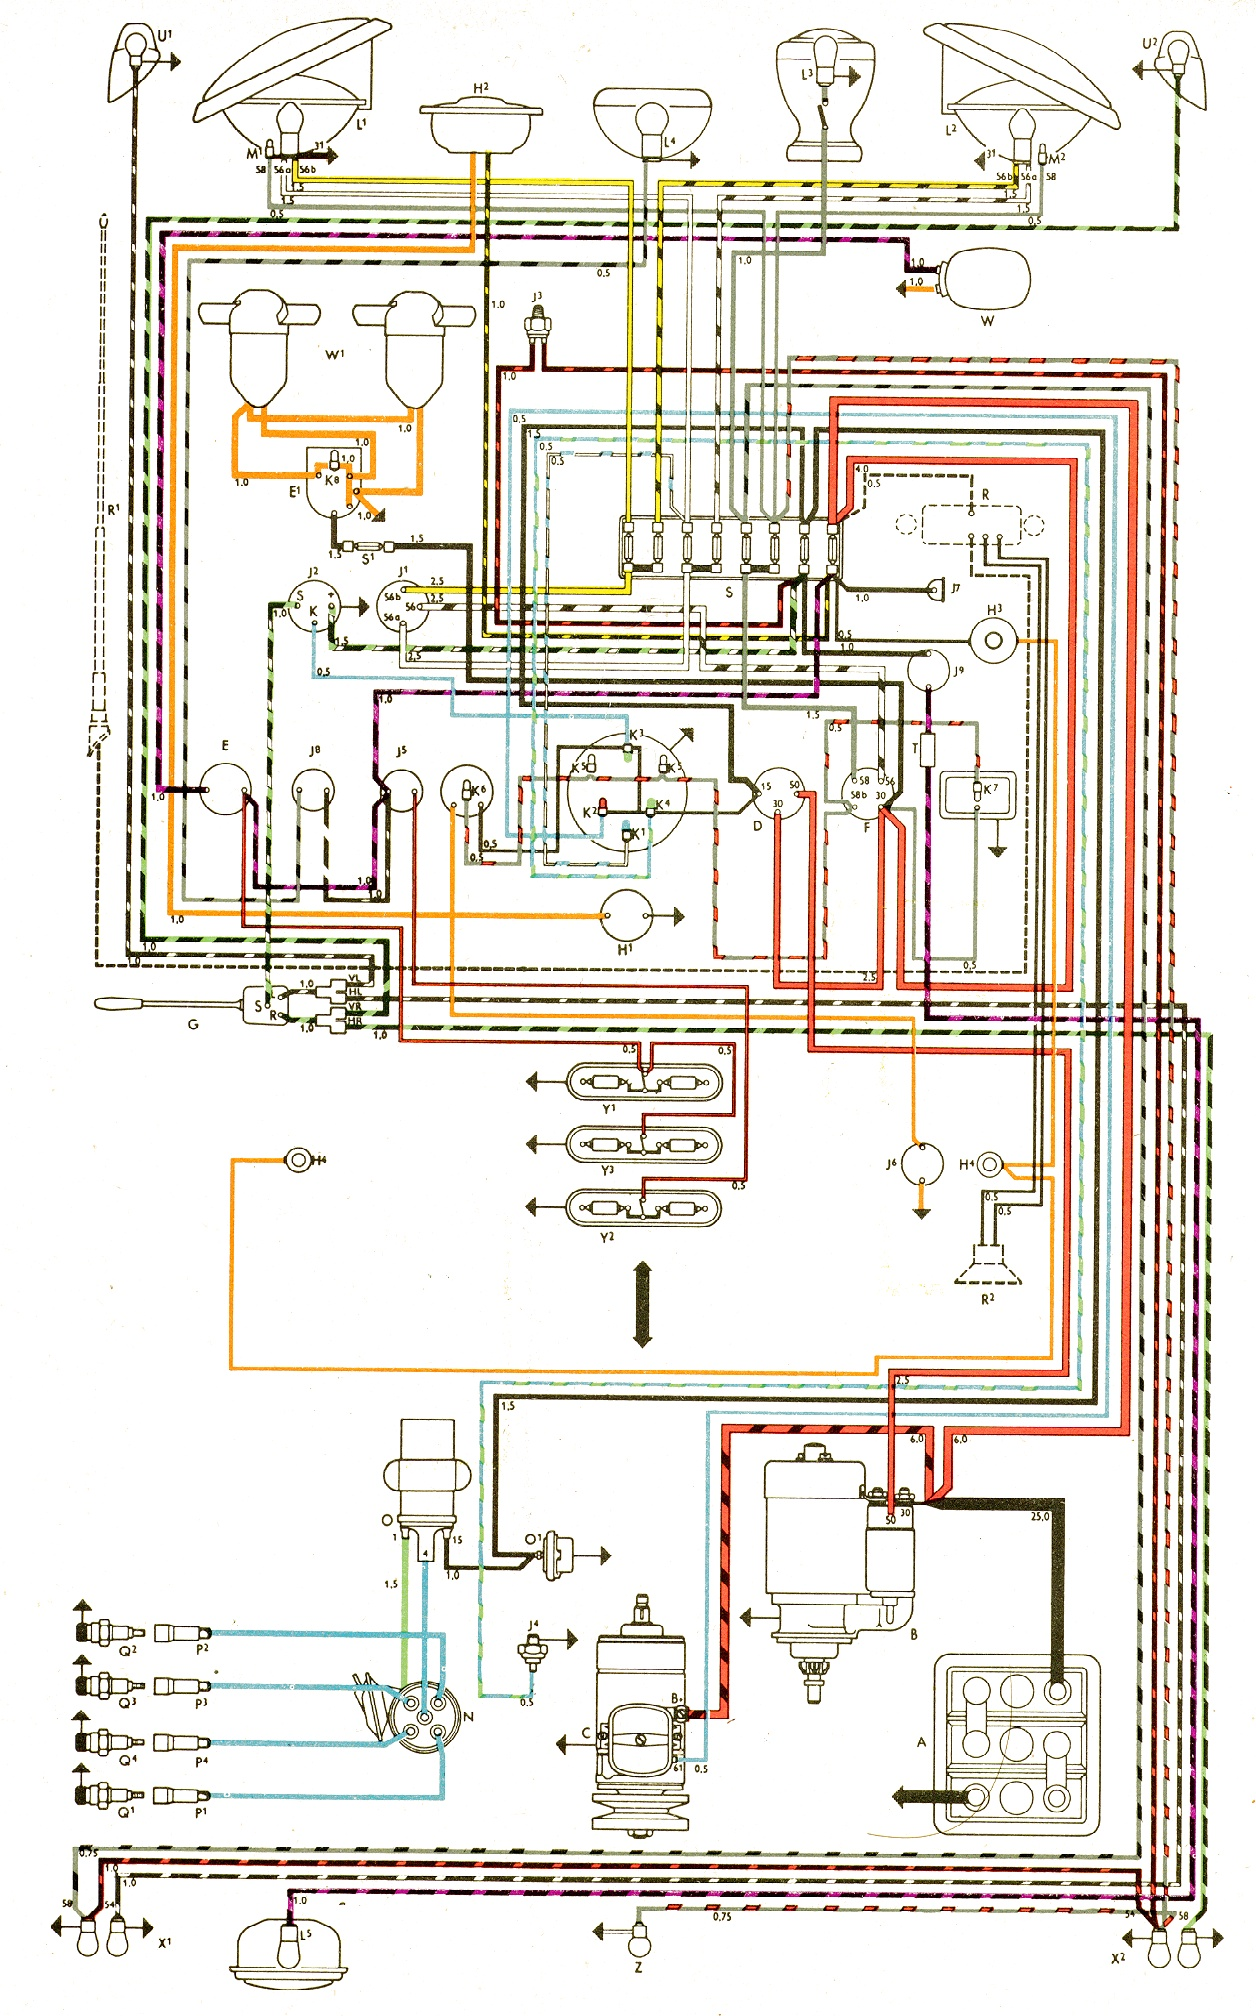 bus 62 vintagebus com vw bus (and other) wiring diagrams vw engine wiring diagram at aneh.co